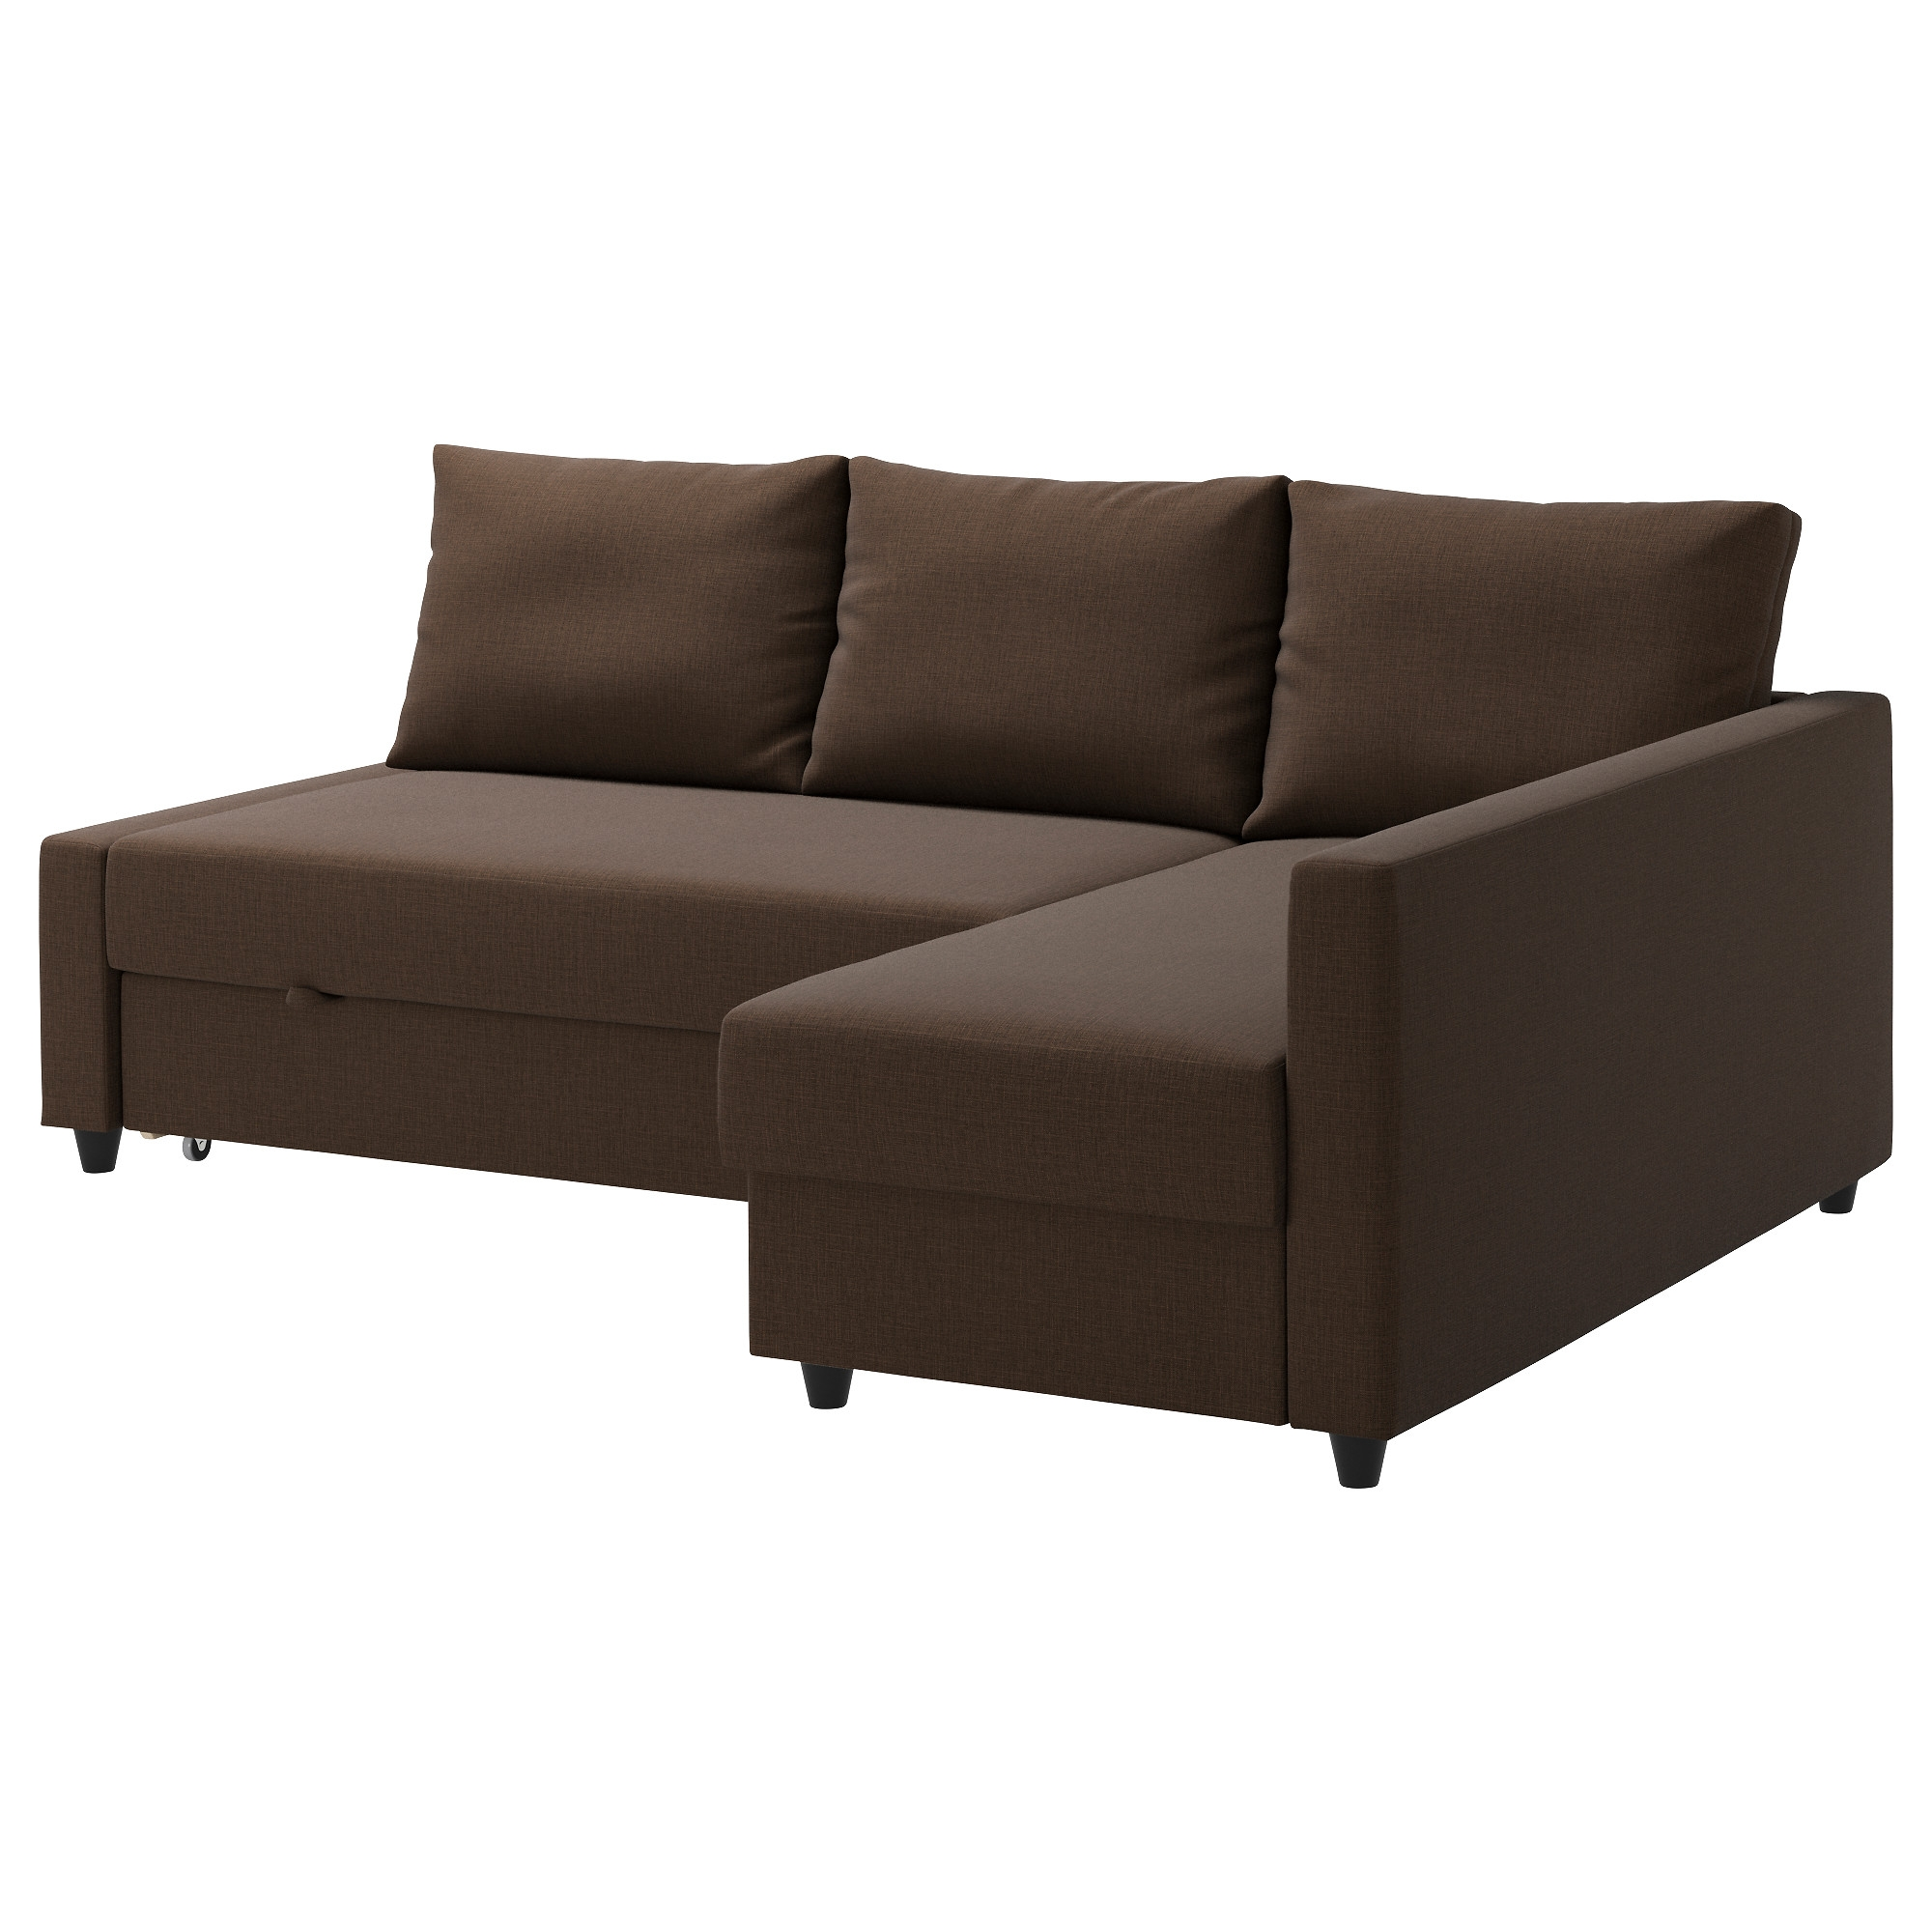 Friheten Corner Sofa Bed With Storage Skiftebo Dark Gray Ikea Intended For Corner Sofa Bed With Storage Ikea (Image 4 of 15)